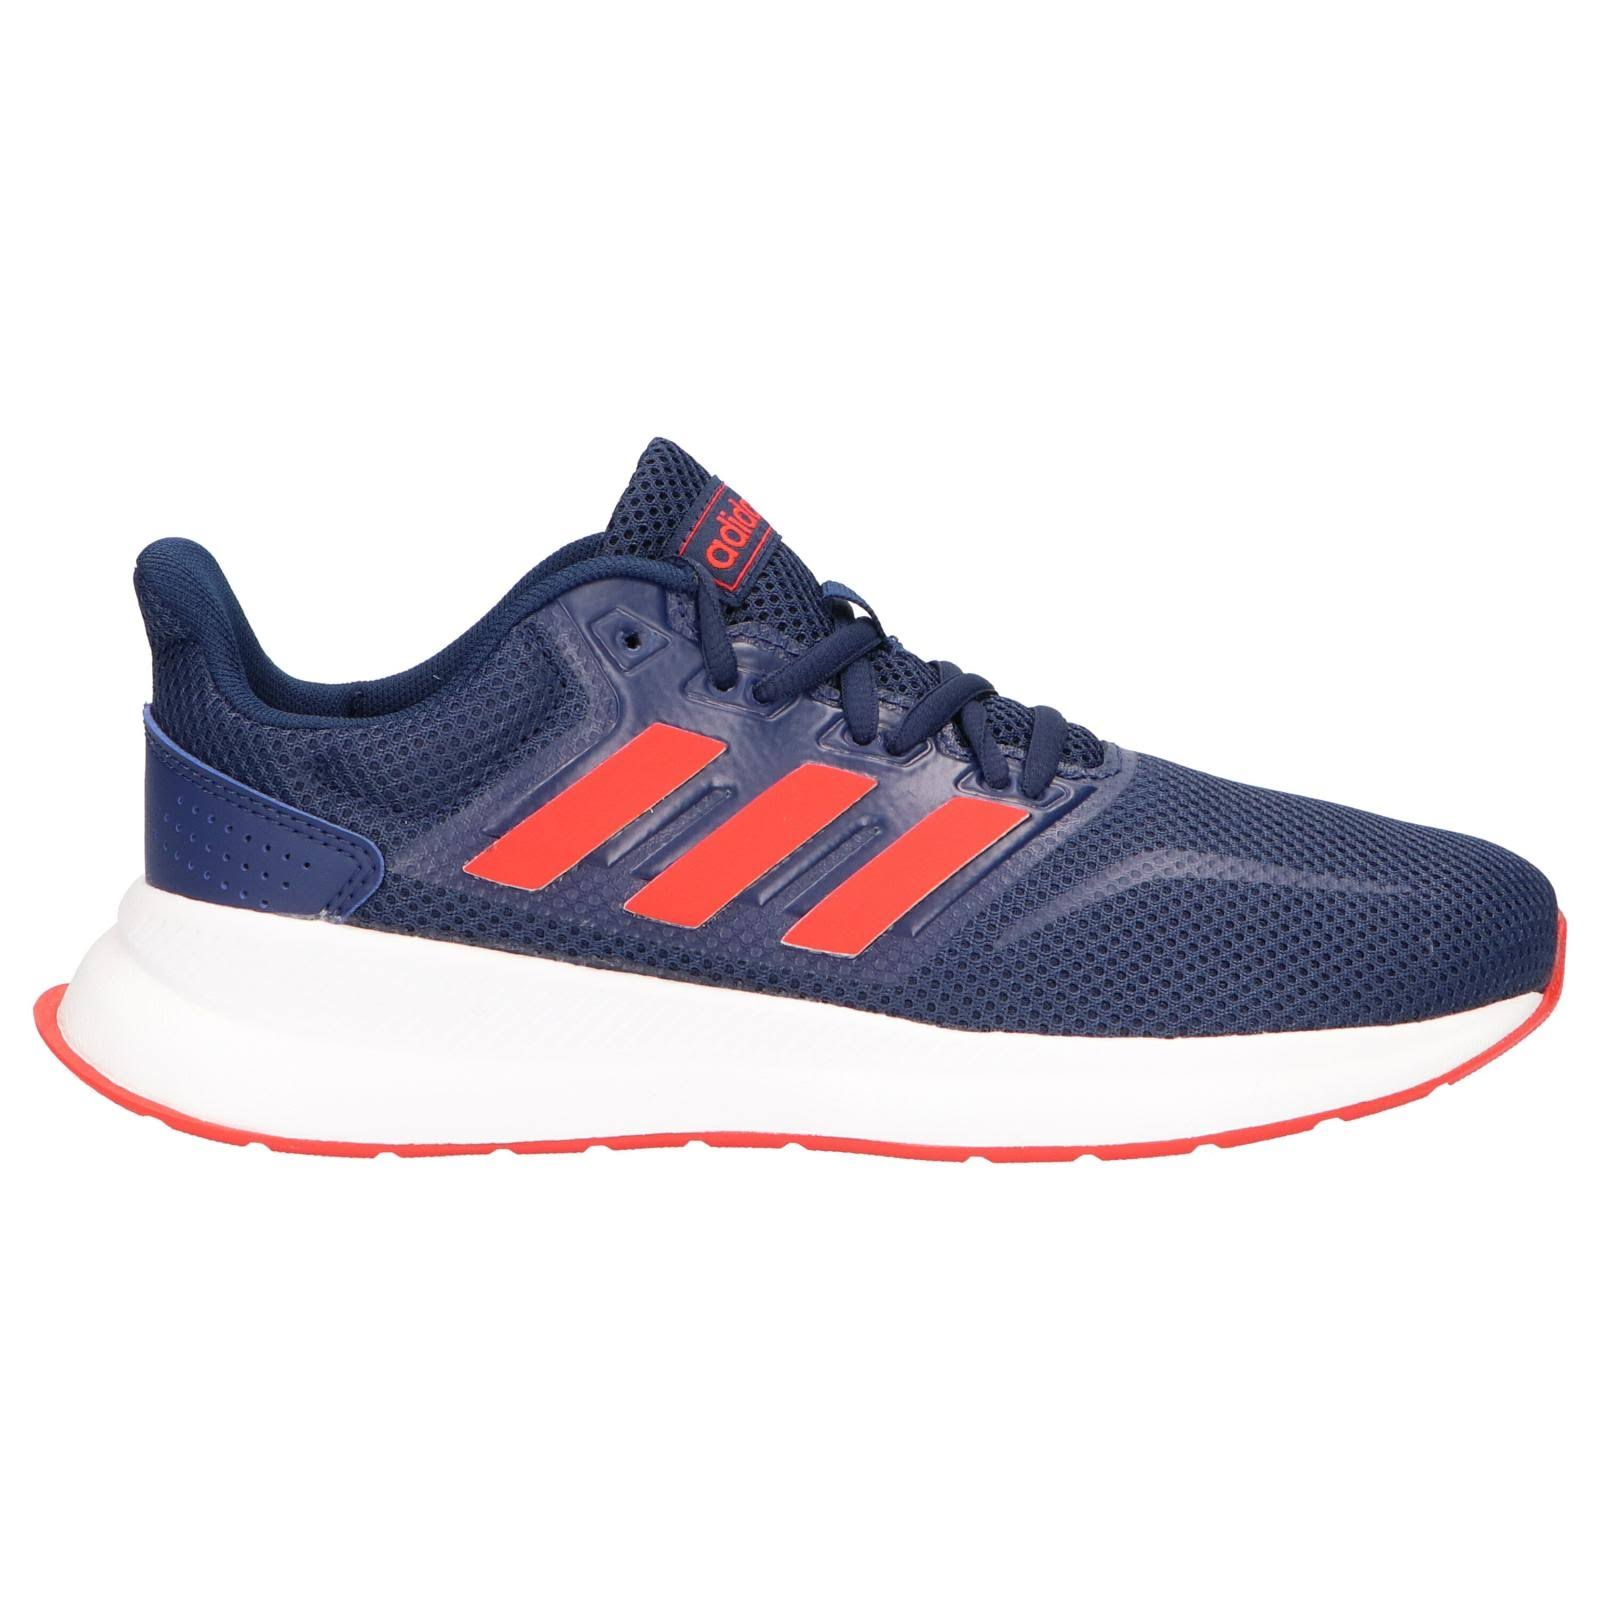 Sports shoes for Women and Boy and Girl ADIDAS F36543 RUN FALCON MARINO